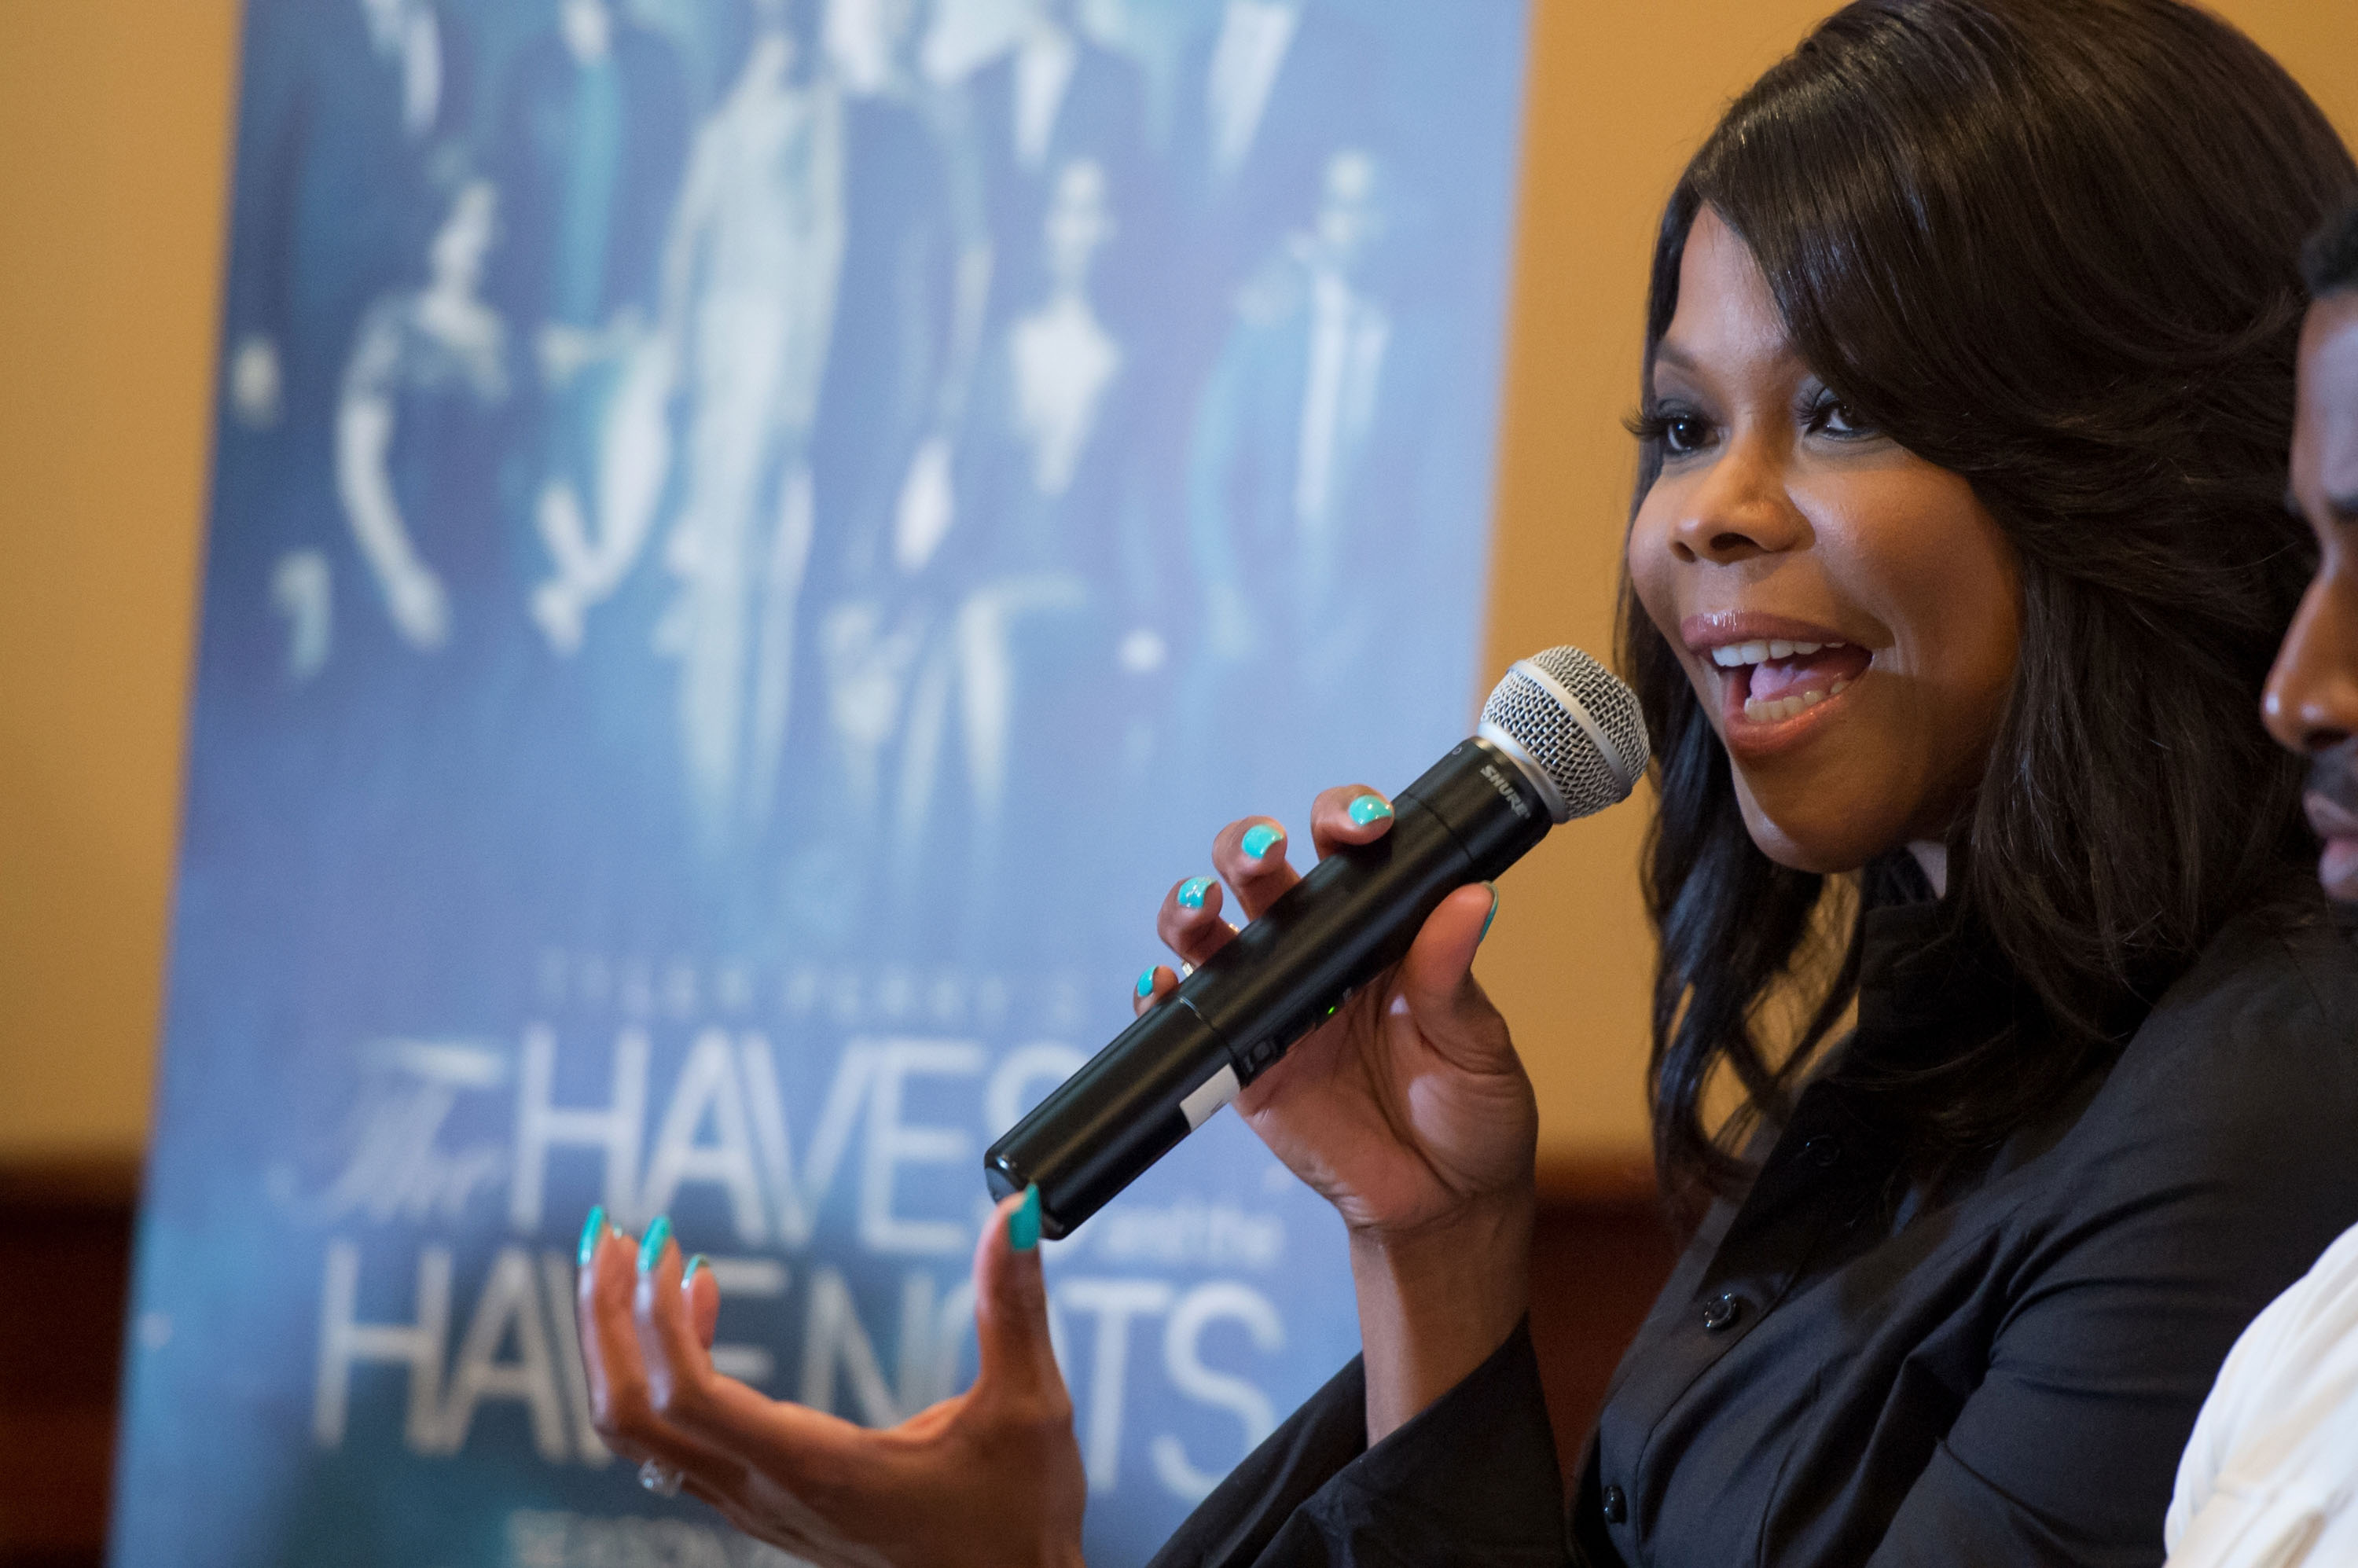 Oprah Winfrey Network's Press Reception With Tyler Perry's 'The Haves & The Have Nots' & 'Love Thy Neighbor'